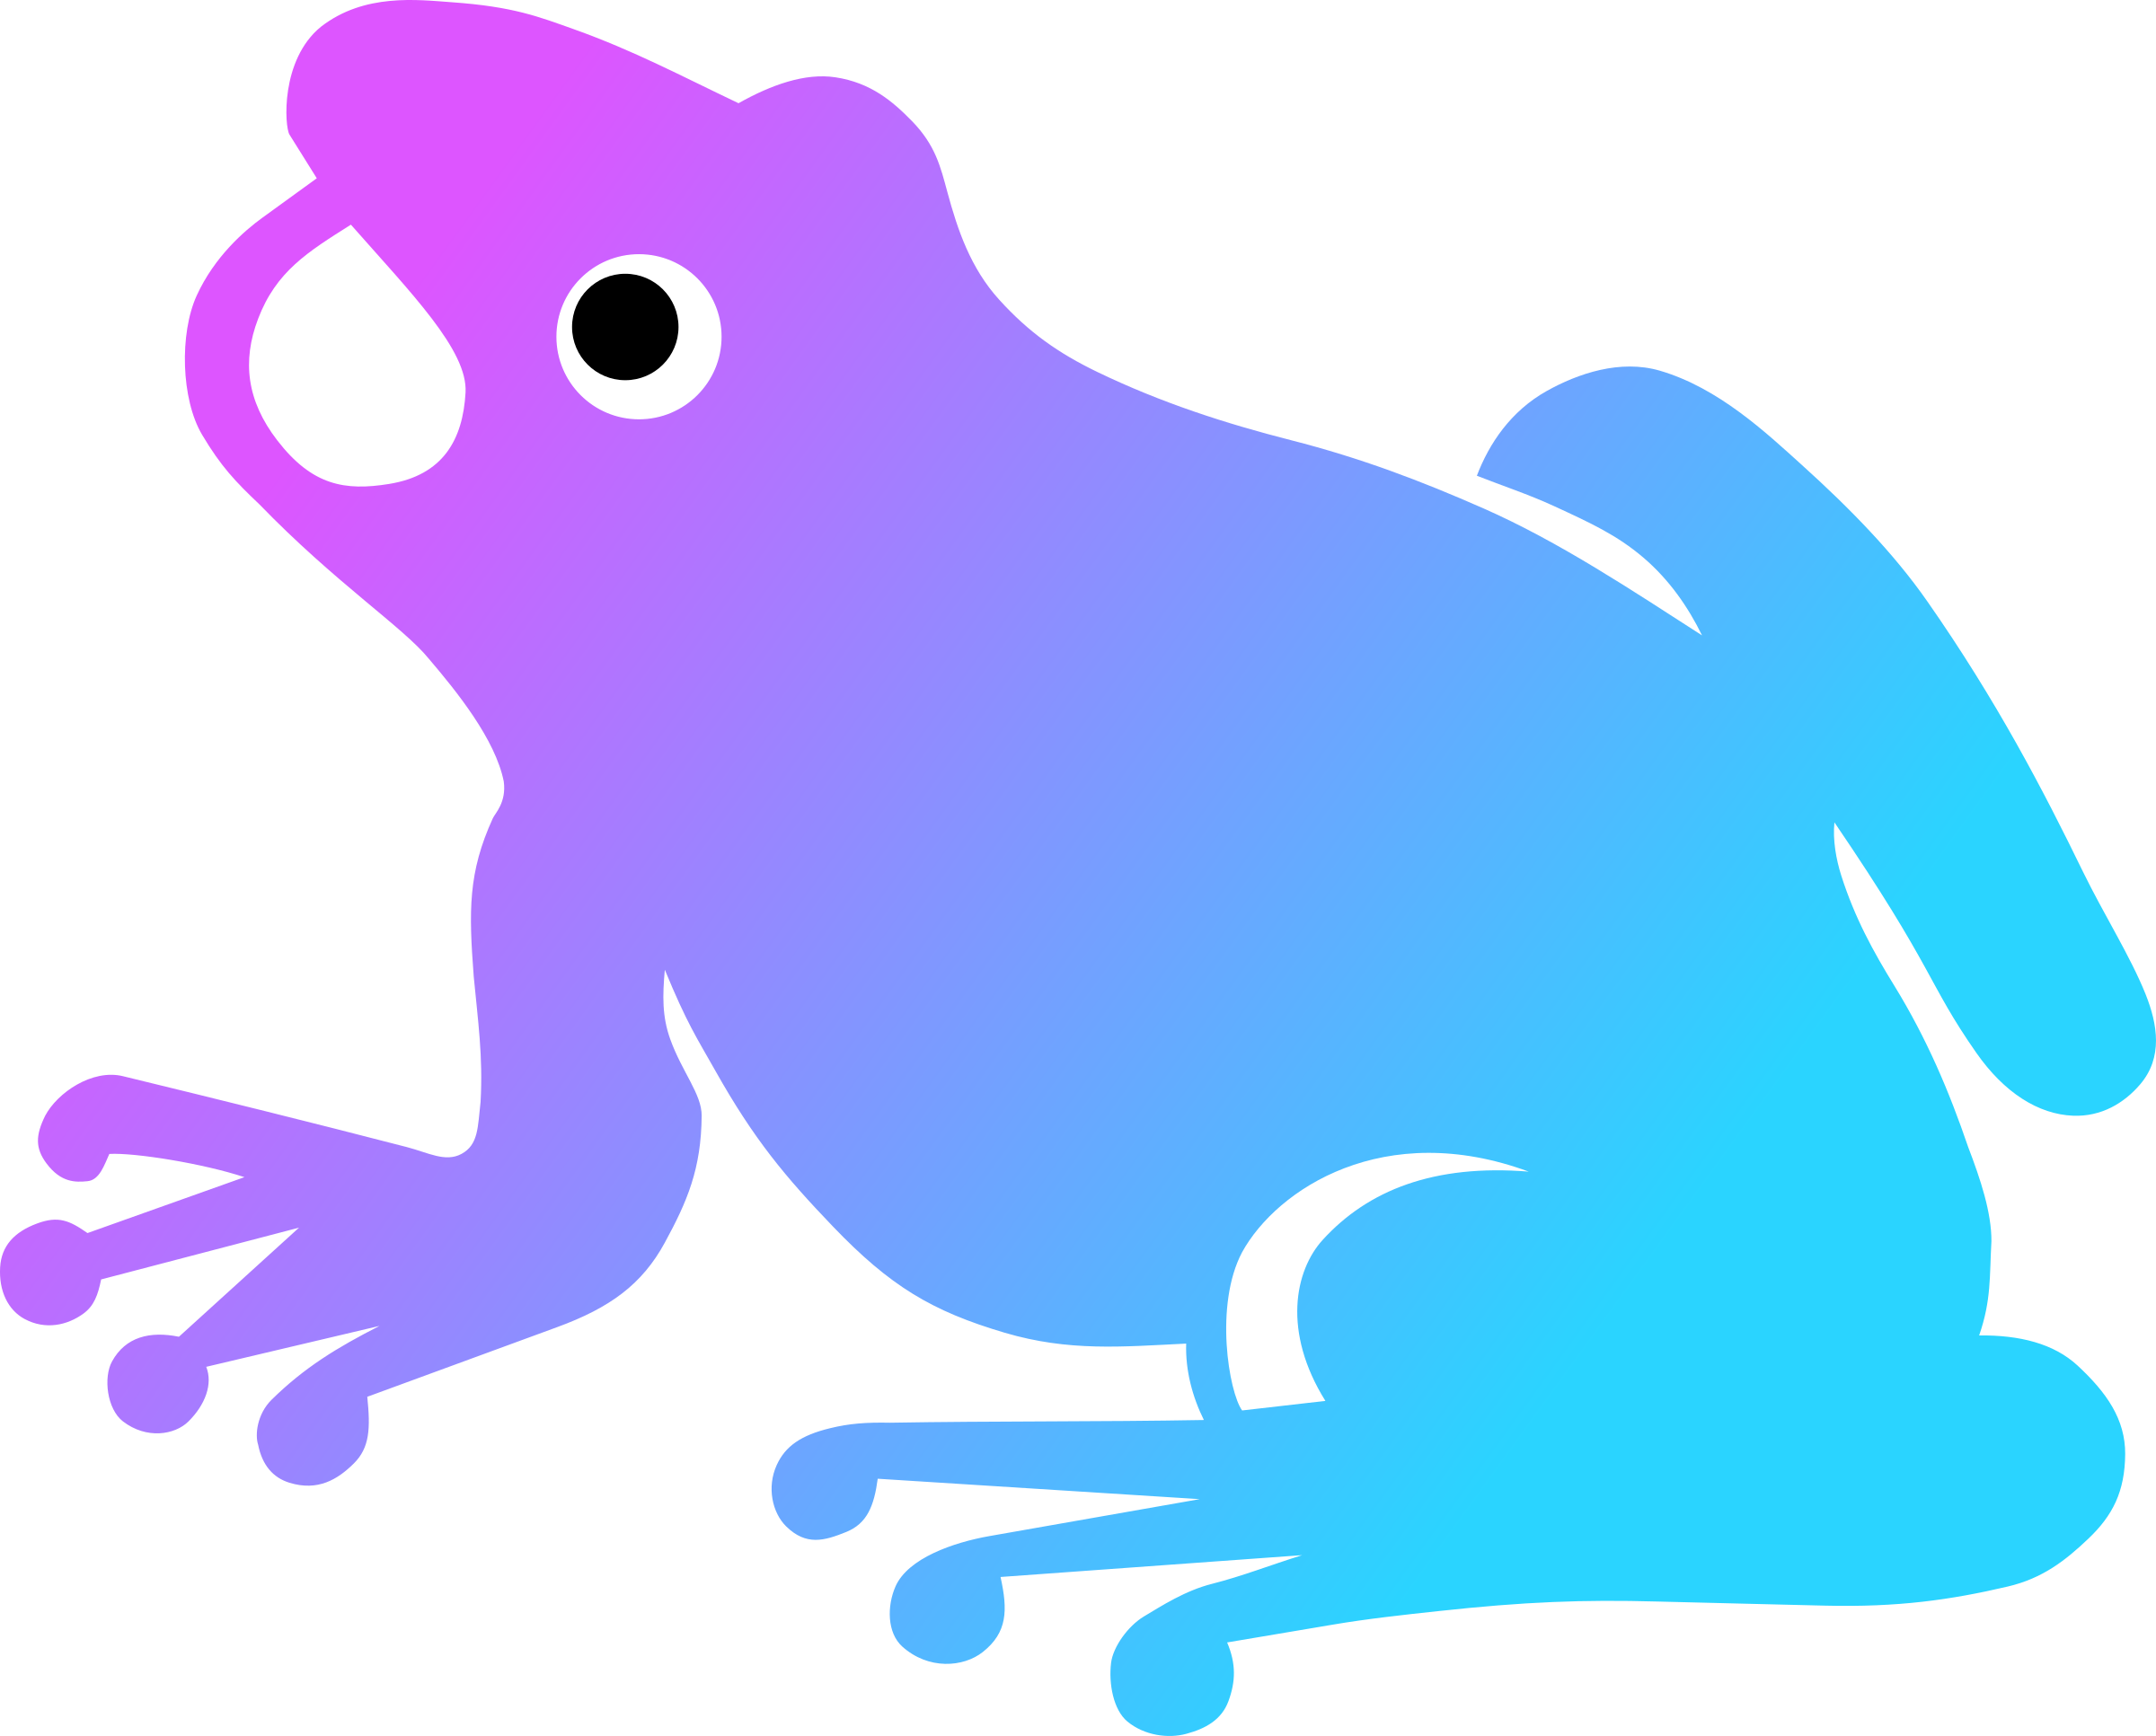 Frogg Colorized: Daily Sketch 33 by keriann3